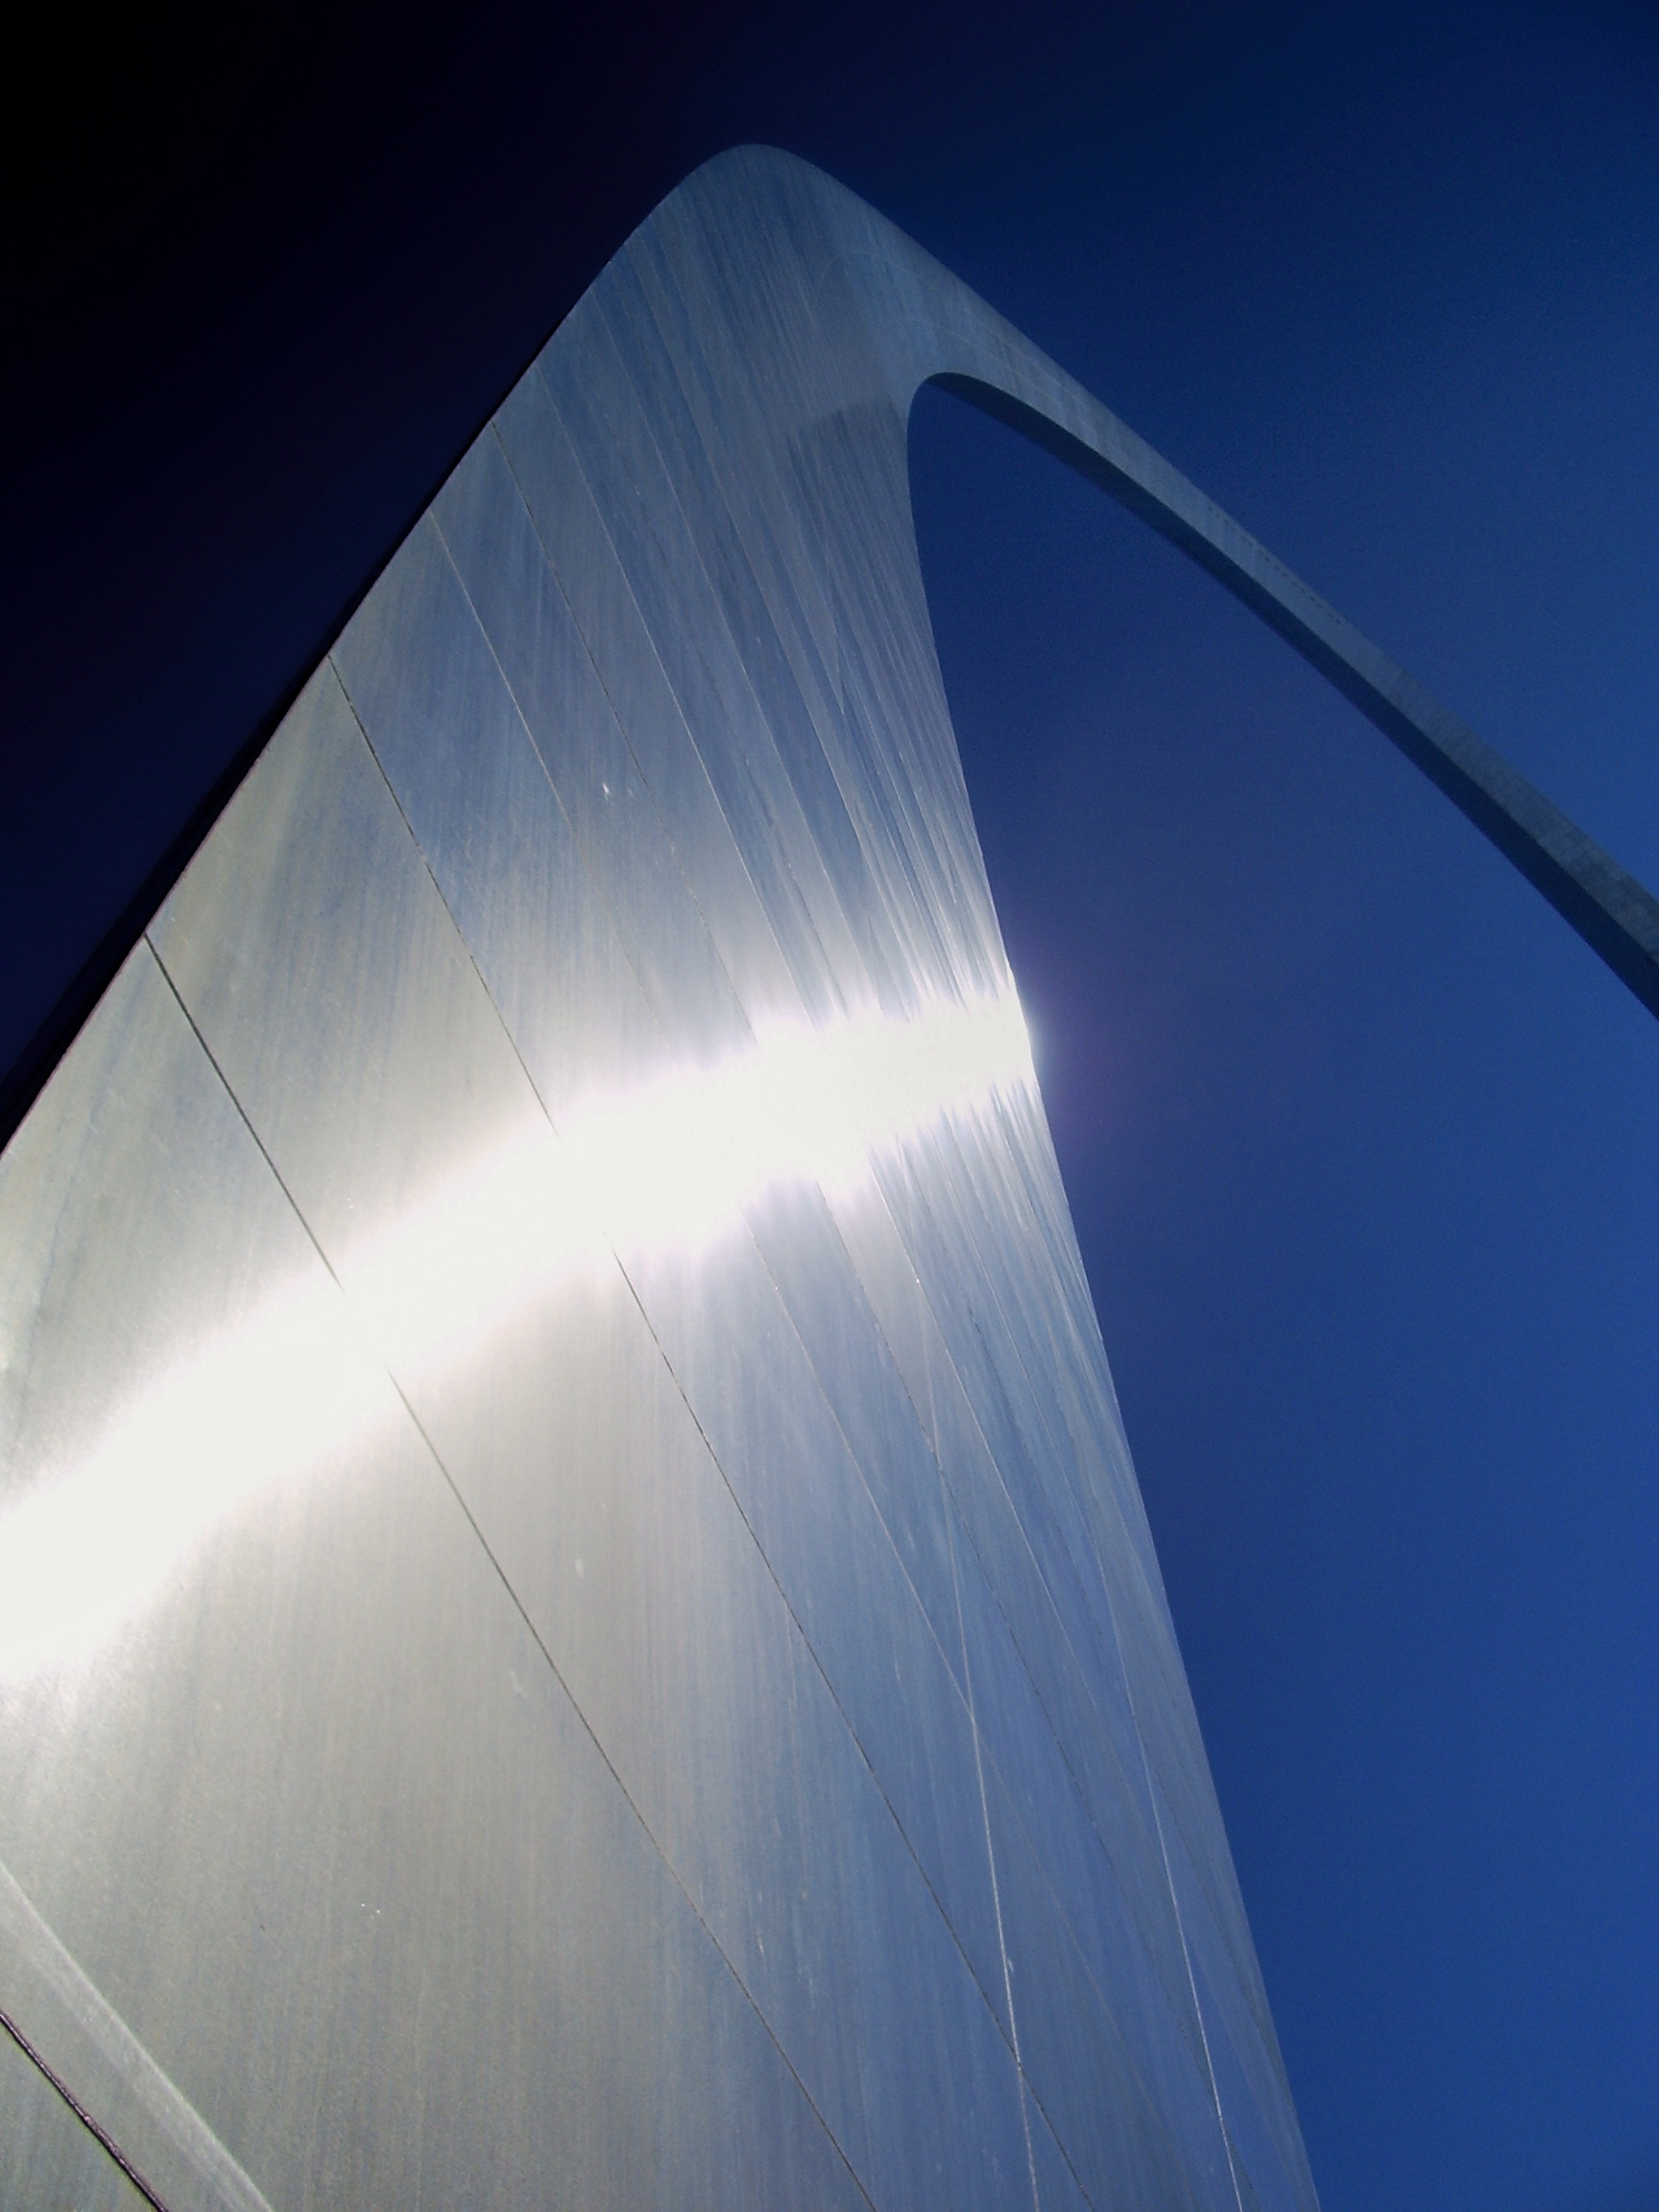 The Arch in St. Louis.